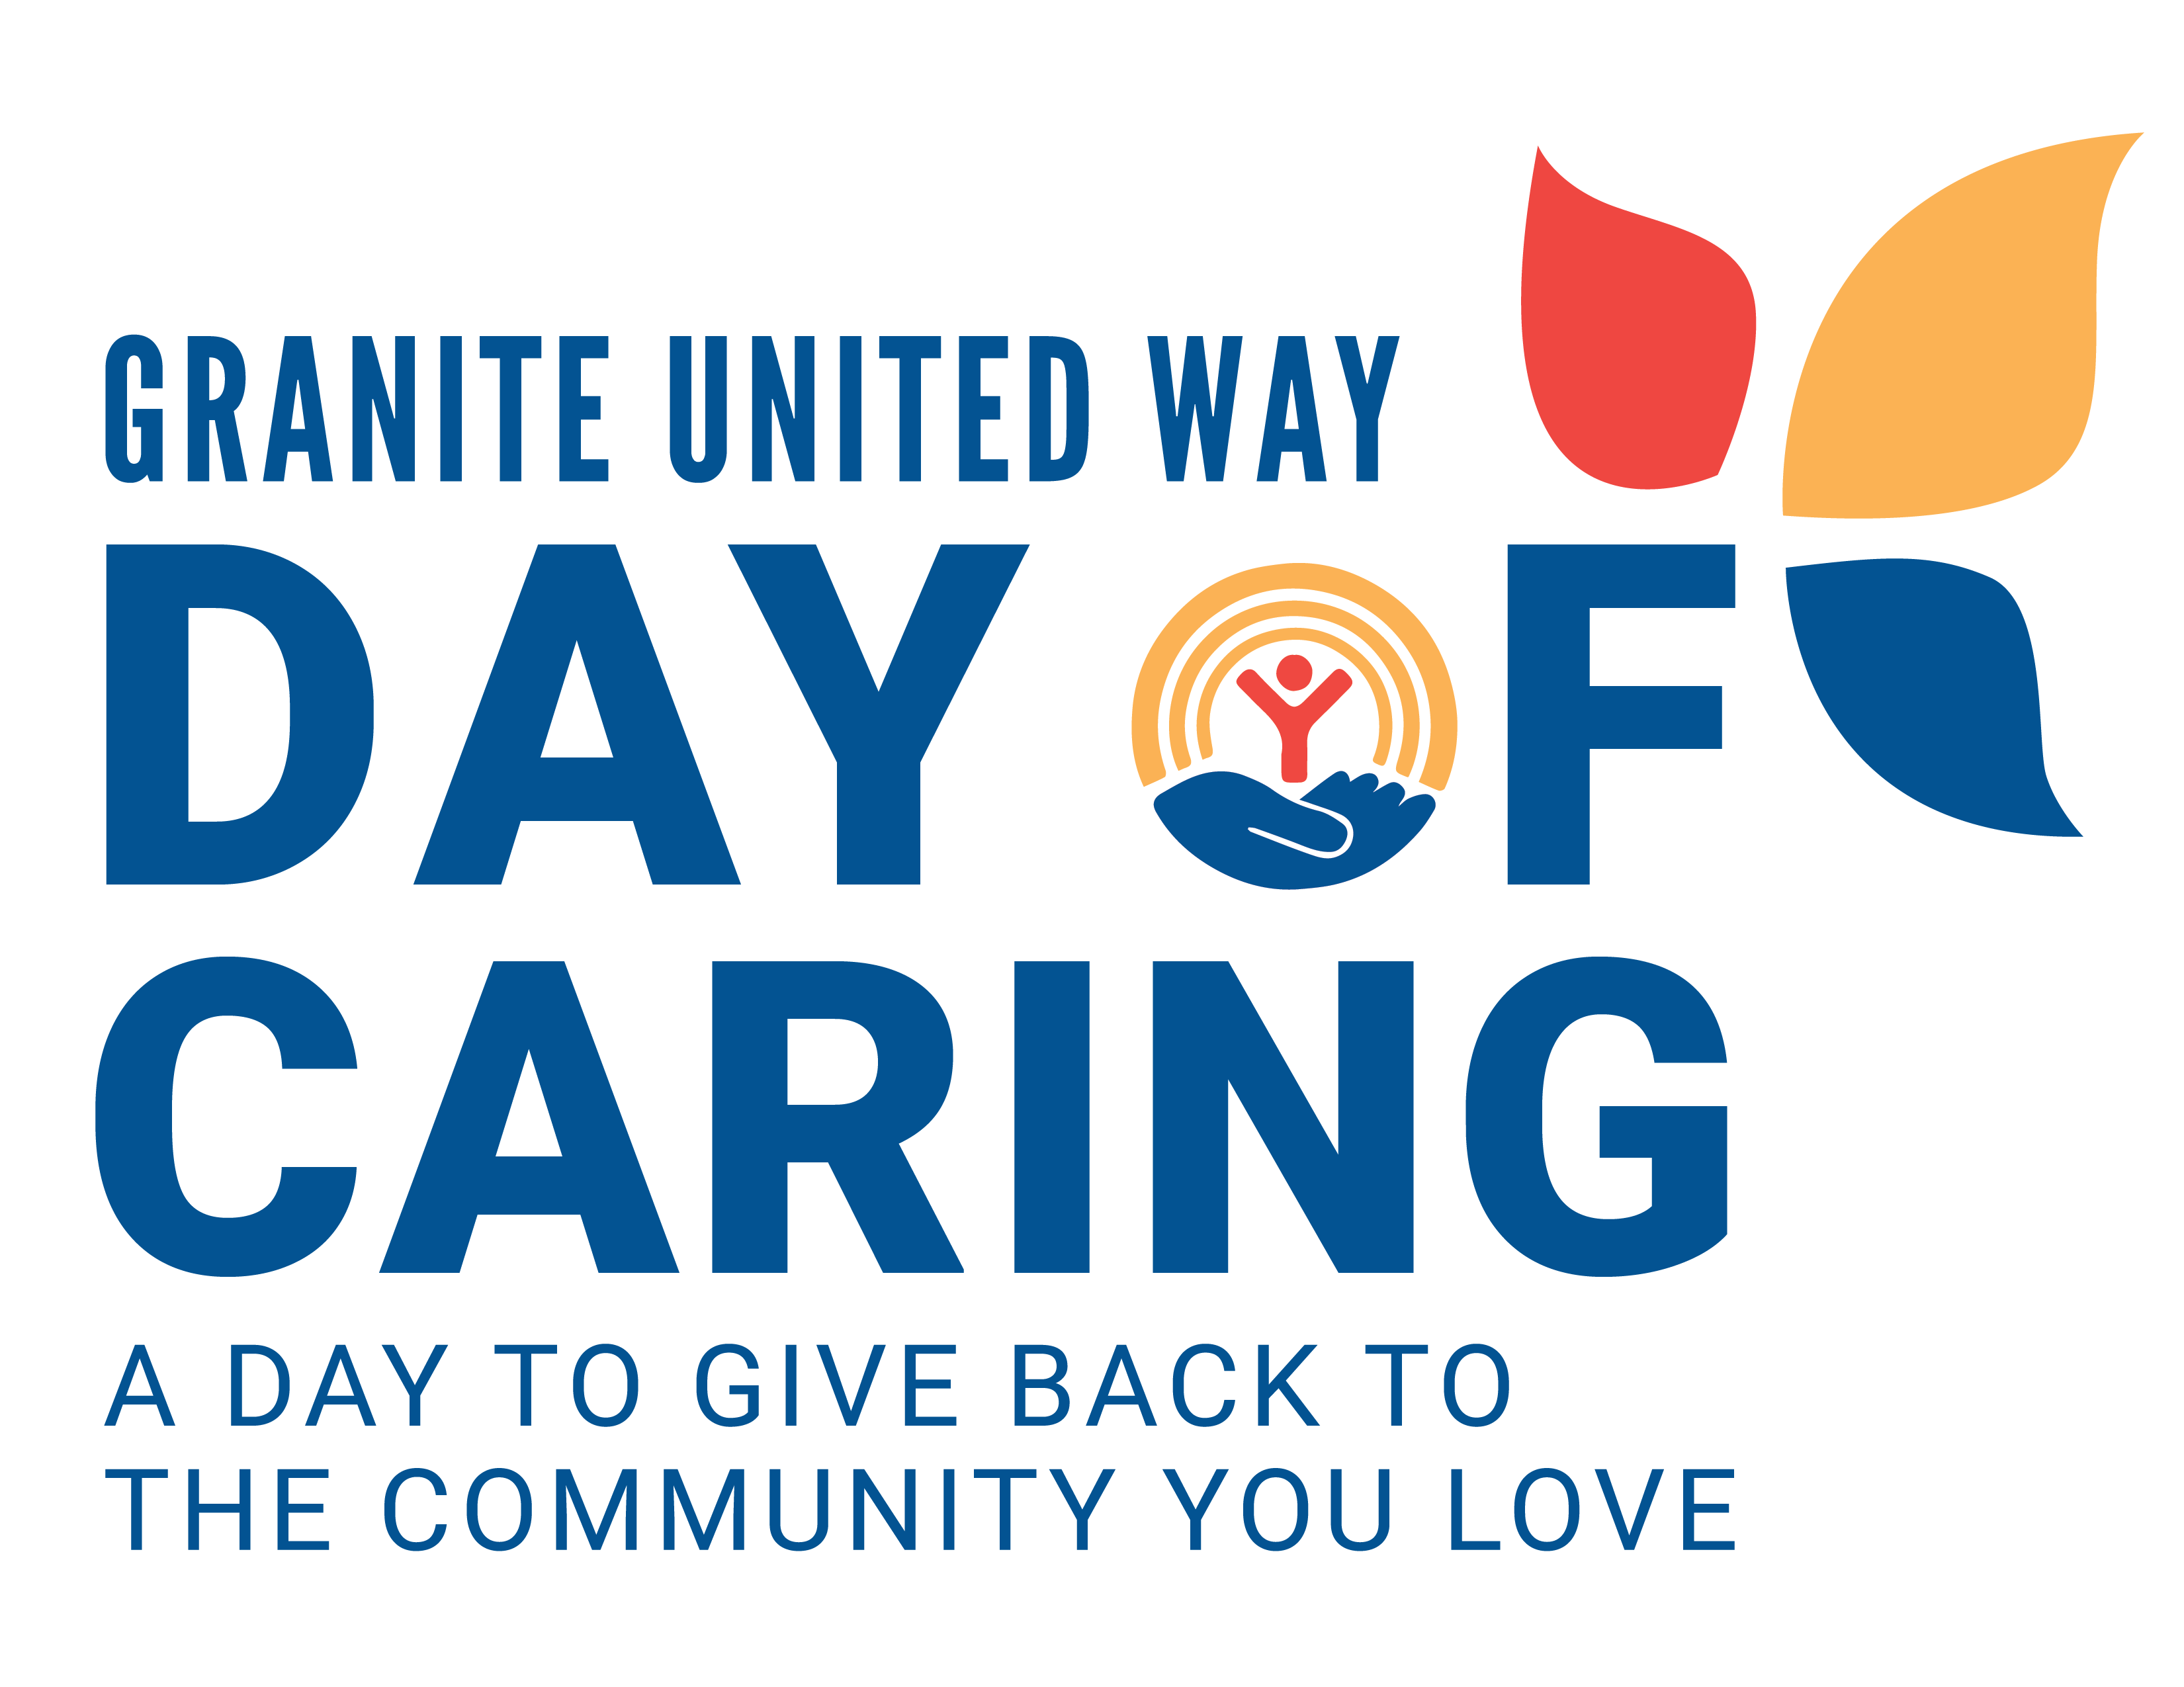 Day of Caring 2019 - We Are Looking For Nonprofit Projects